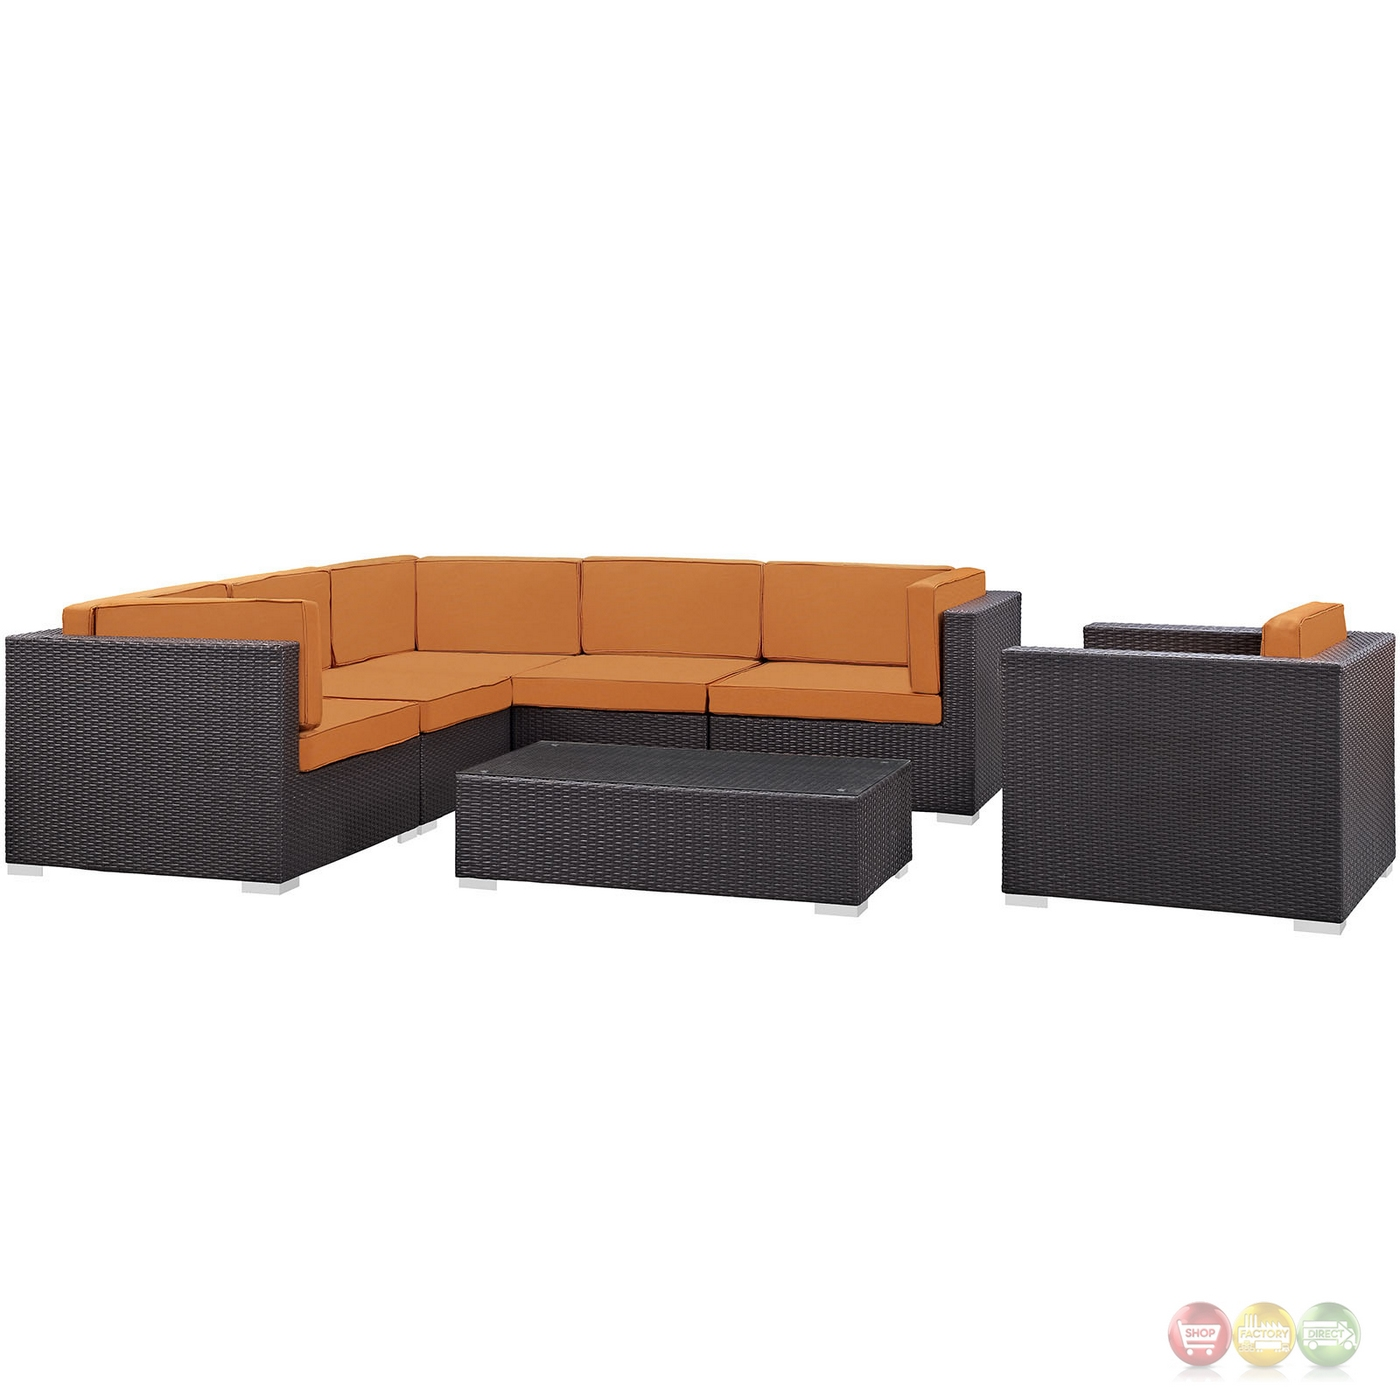 Corona Contemporary 7 Piece Rattan Outdoor Patio Sectional